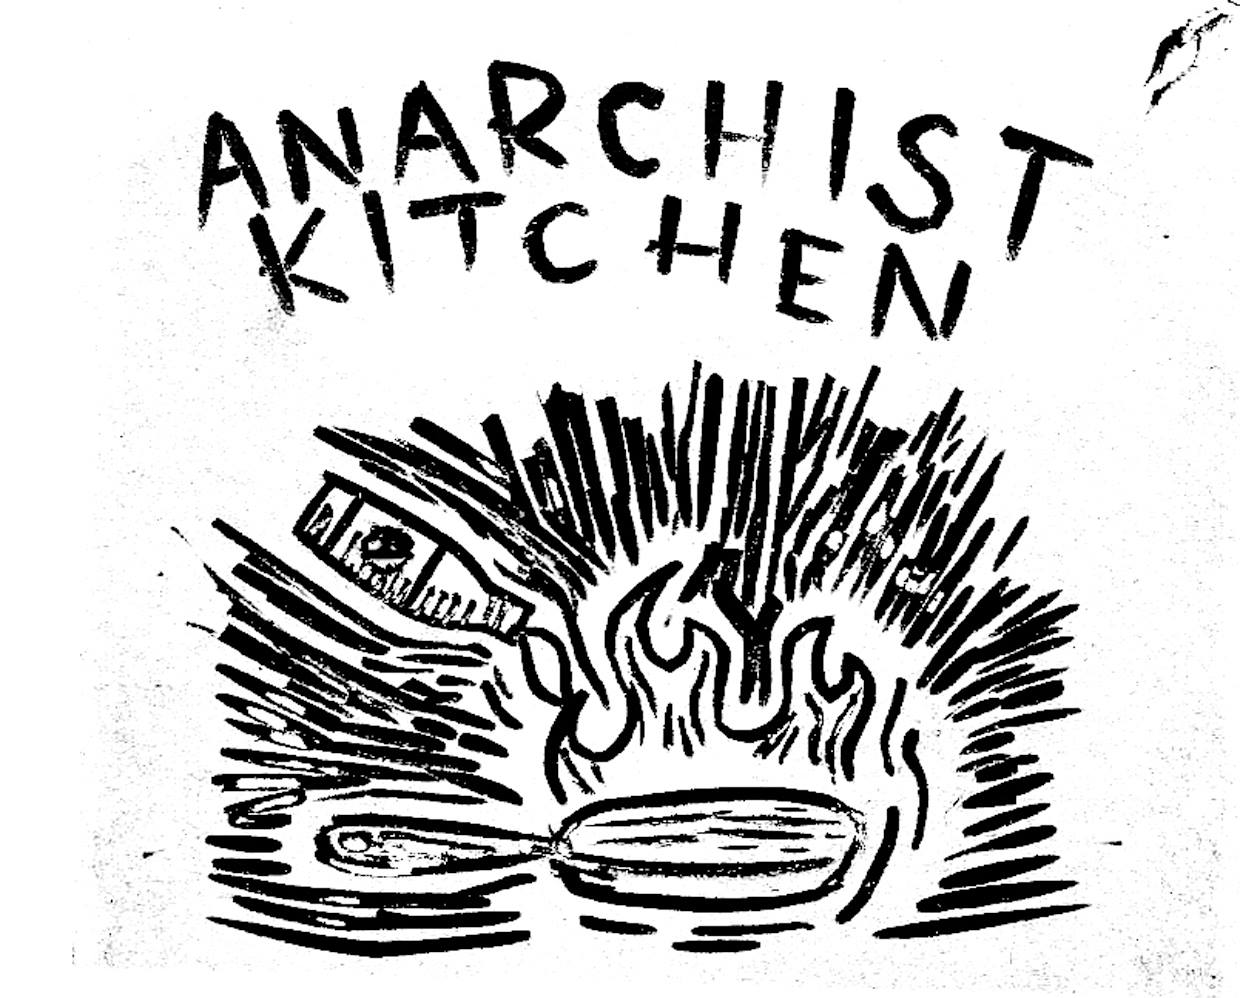 anarchist kitchen az aachen autonomes zentrum aachen. Black Bedroom Furniture Sets. Home Design Ideas